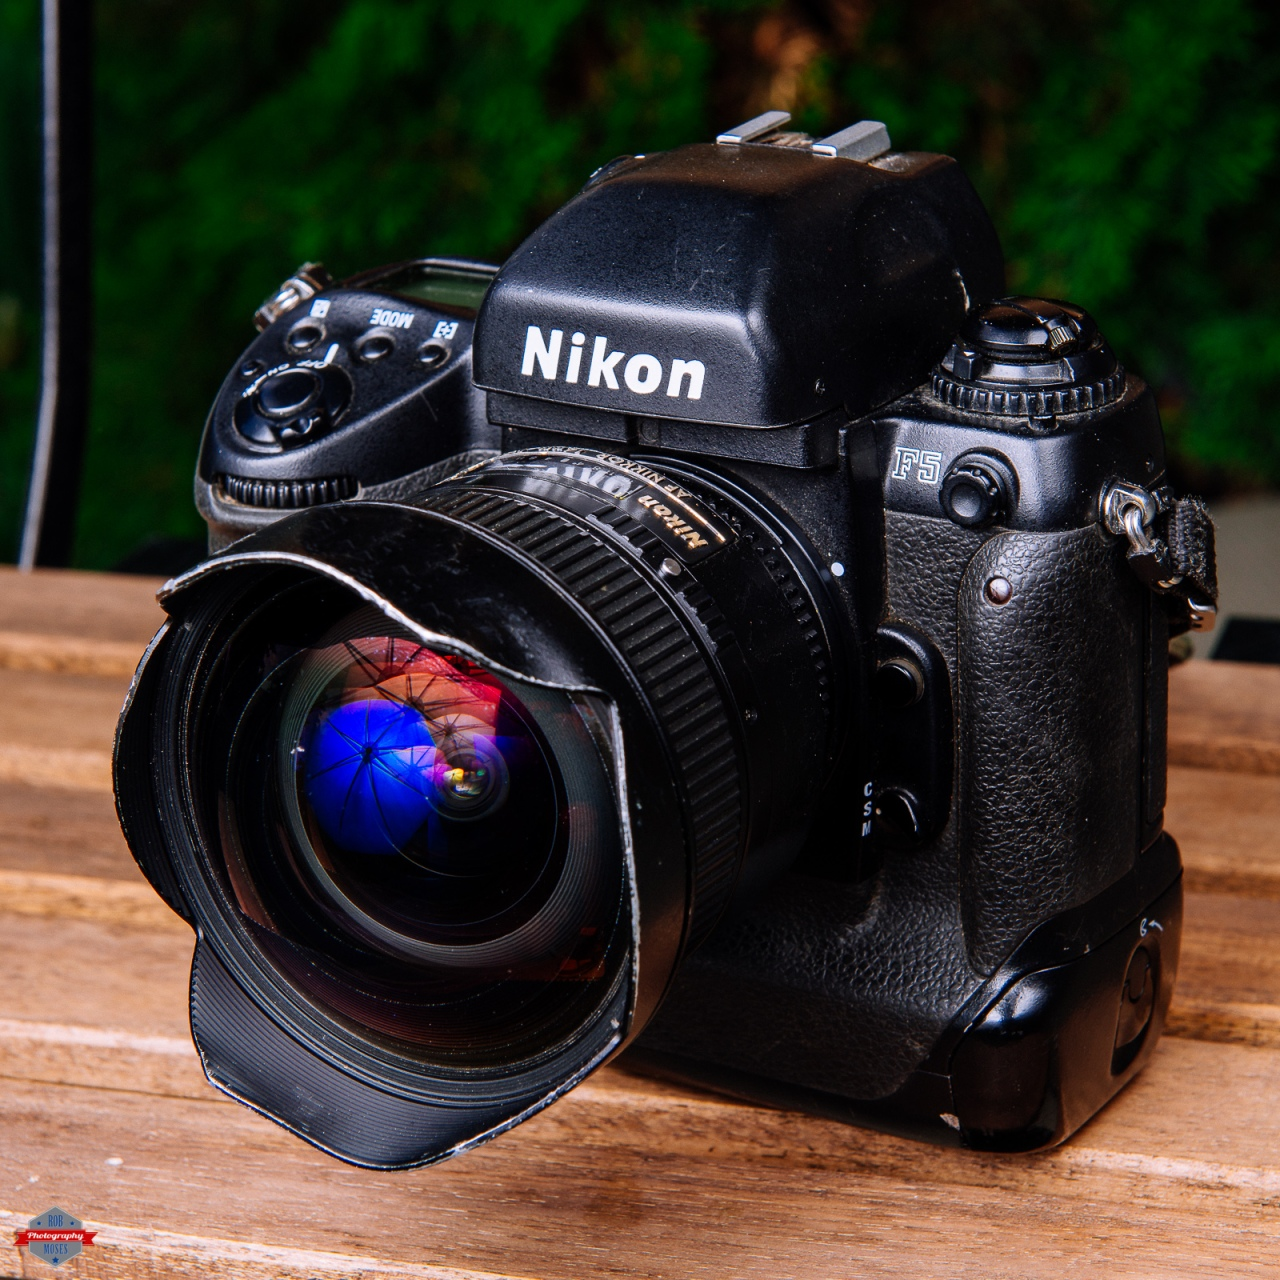 Nikon F5 Film SLR Camera 14mm f-2.8 prime Rob Moses Photography